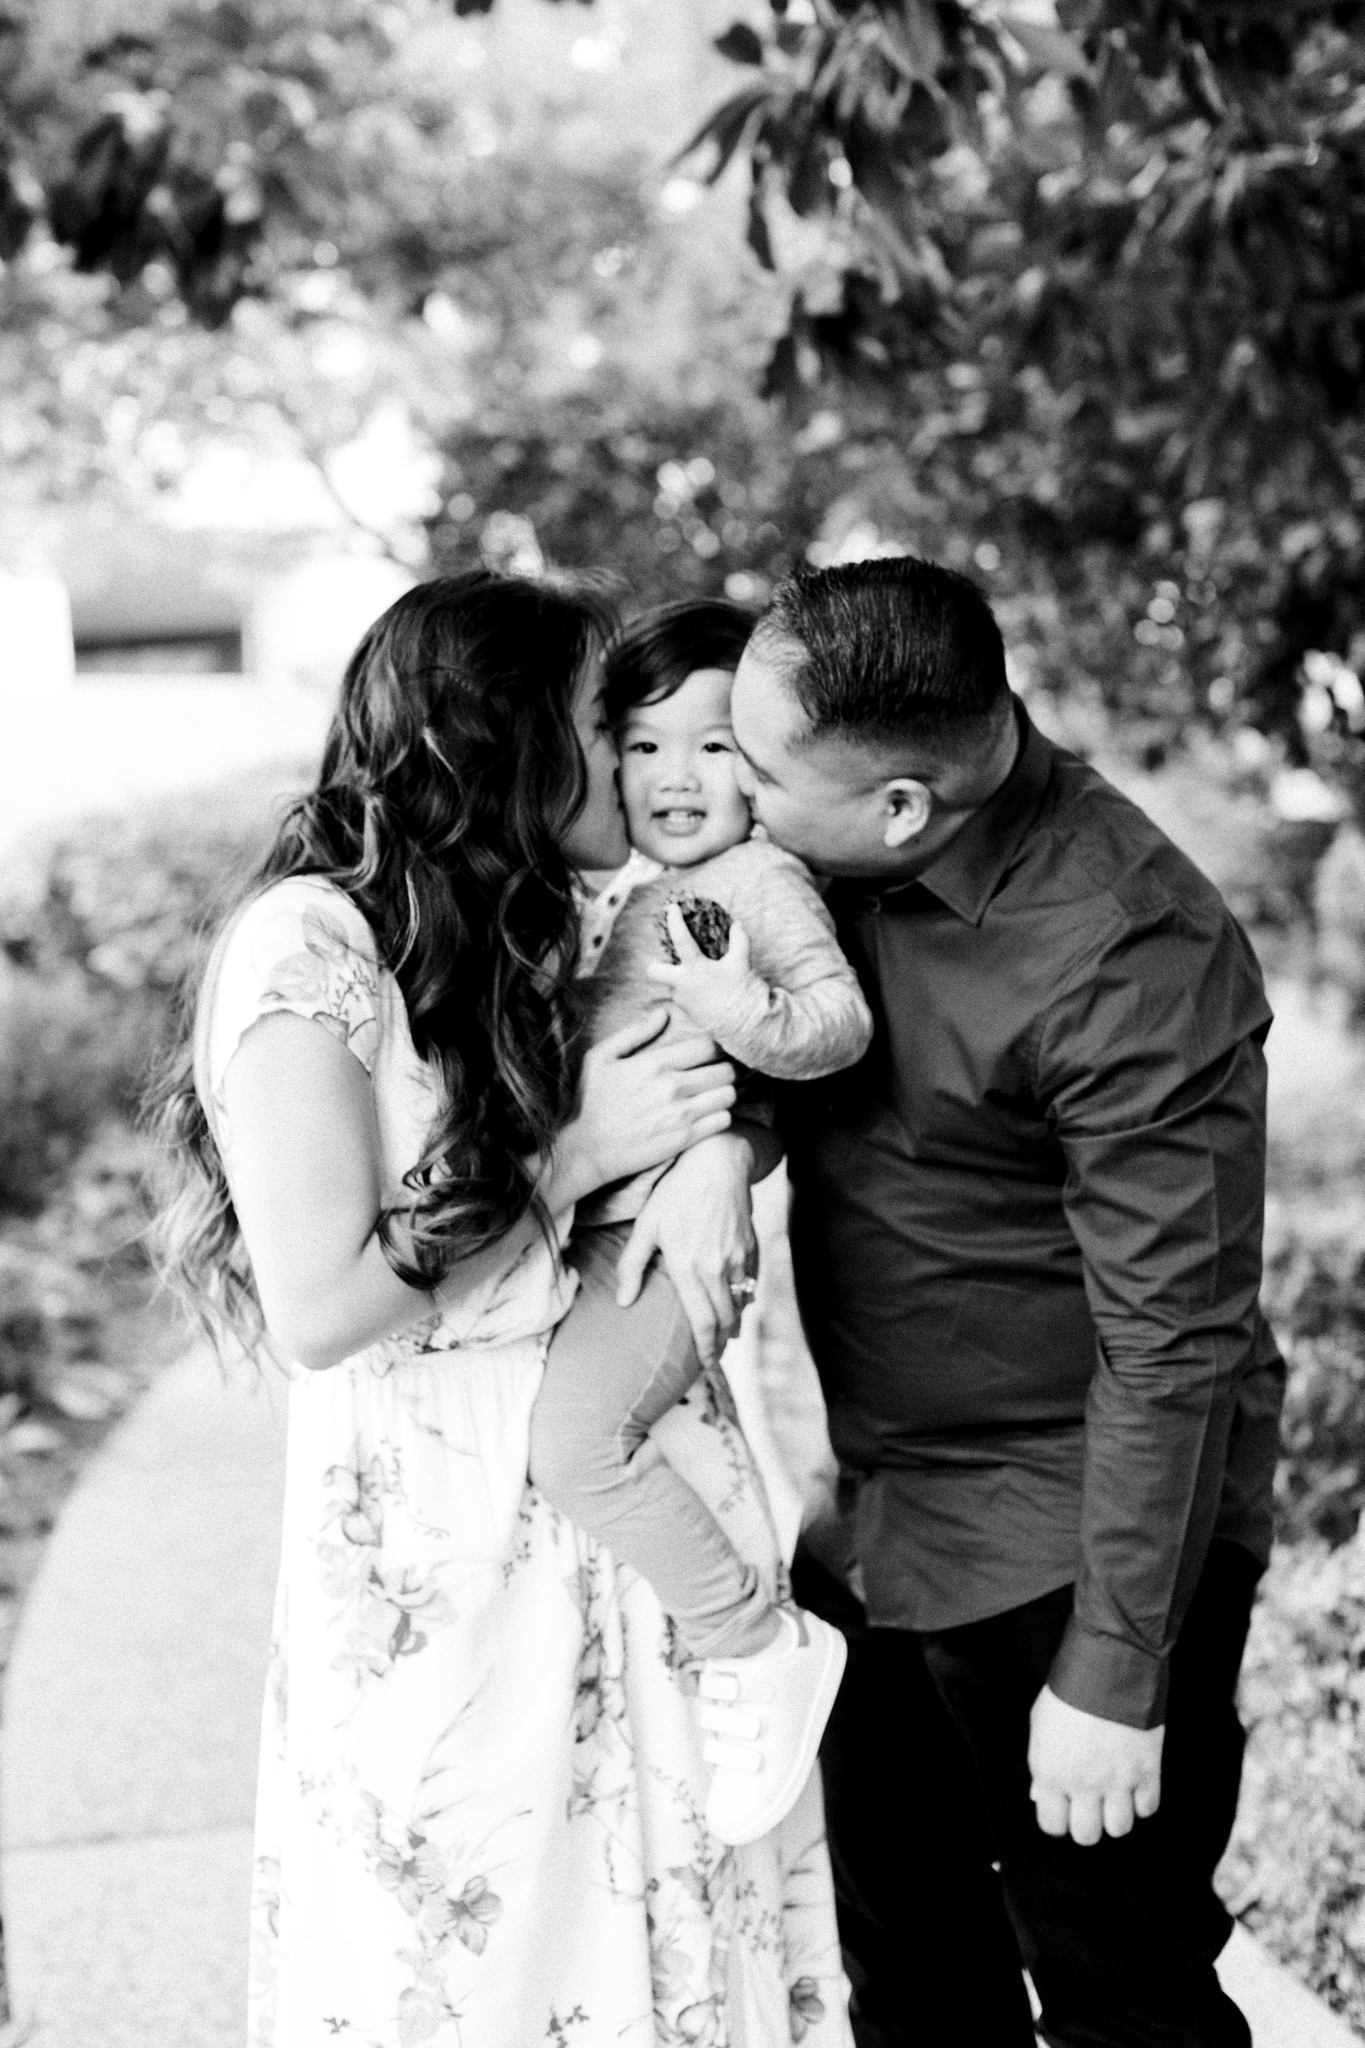 Two parents kissing their son's cheeks during a family photography session.